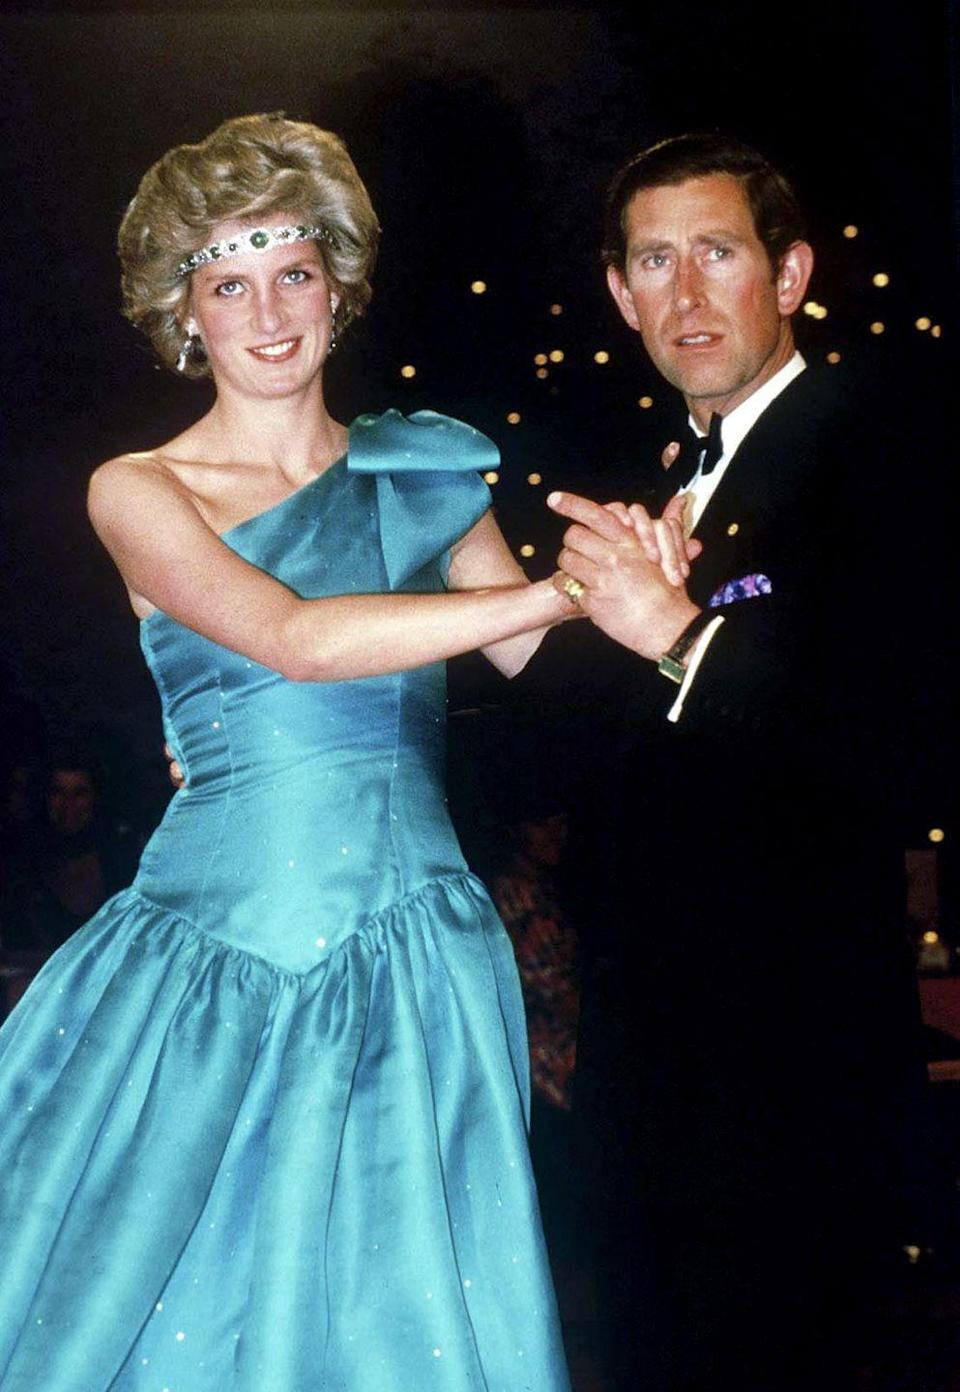 """<p>What to do with a gorgeous emerald and diamond choker loaned from the Queen? Wear it as a headband. Perhaps not what the Queen had in mind, but <a href=""""https://people.com/royals/princess-diana-jewelry-collection-tiaras/#the-art-deco-emerald-choker"""" rel=""""nofollow noopener"""" target=""""_blank"""" data-ylk=""""slk:it worked"""" class=""""link rapid-noclick-resp"""">it worked</a> — and showed Diana's individual sense of style to perfection. Not to mention, maybe it demonstrated a teeny bit of royal rebellion, too? </p>"""